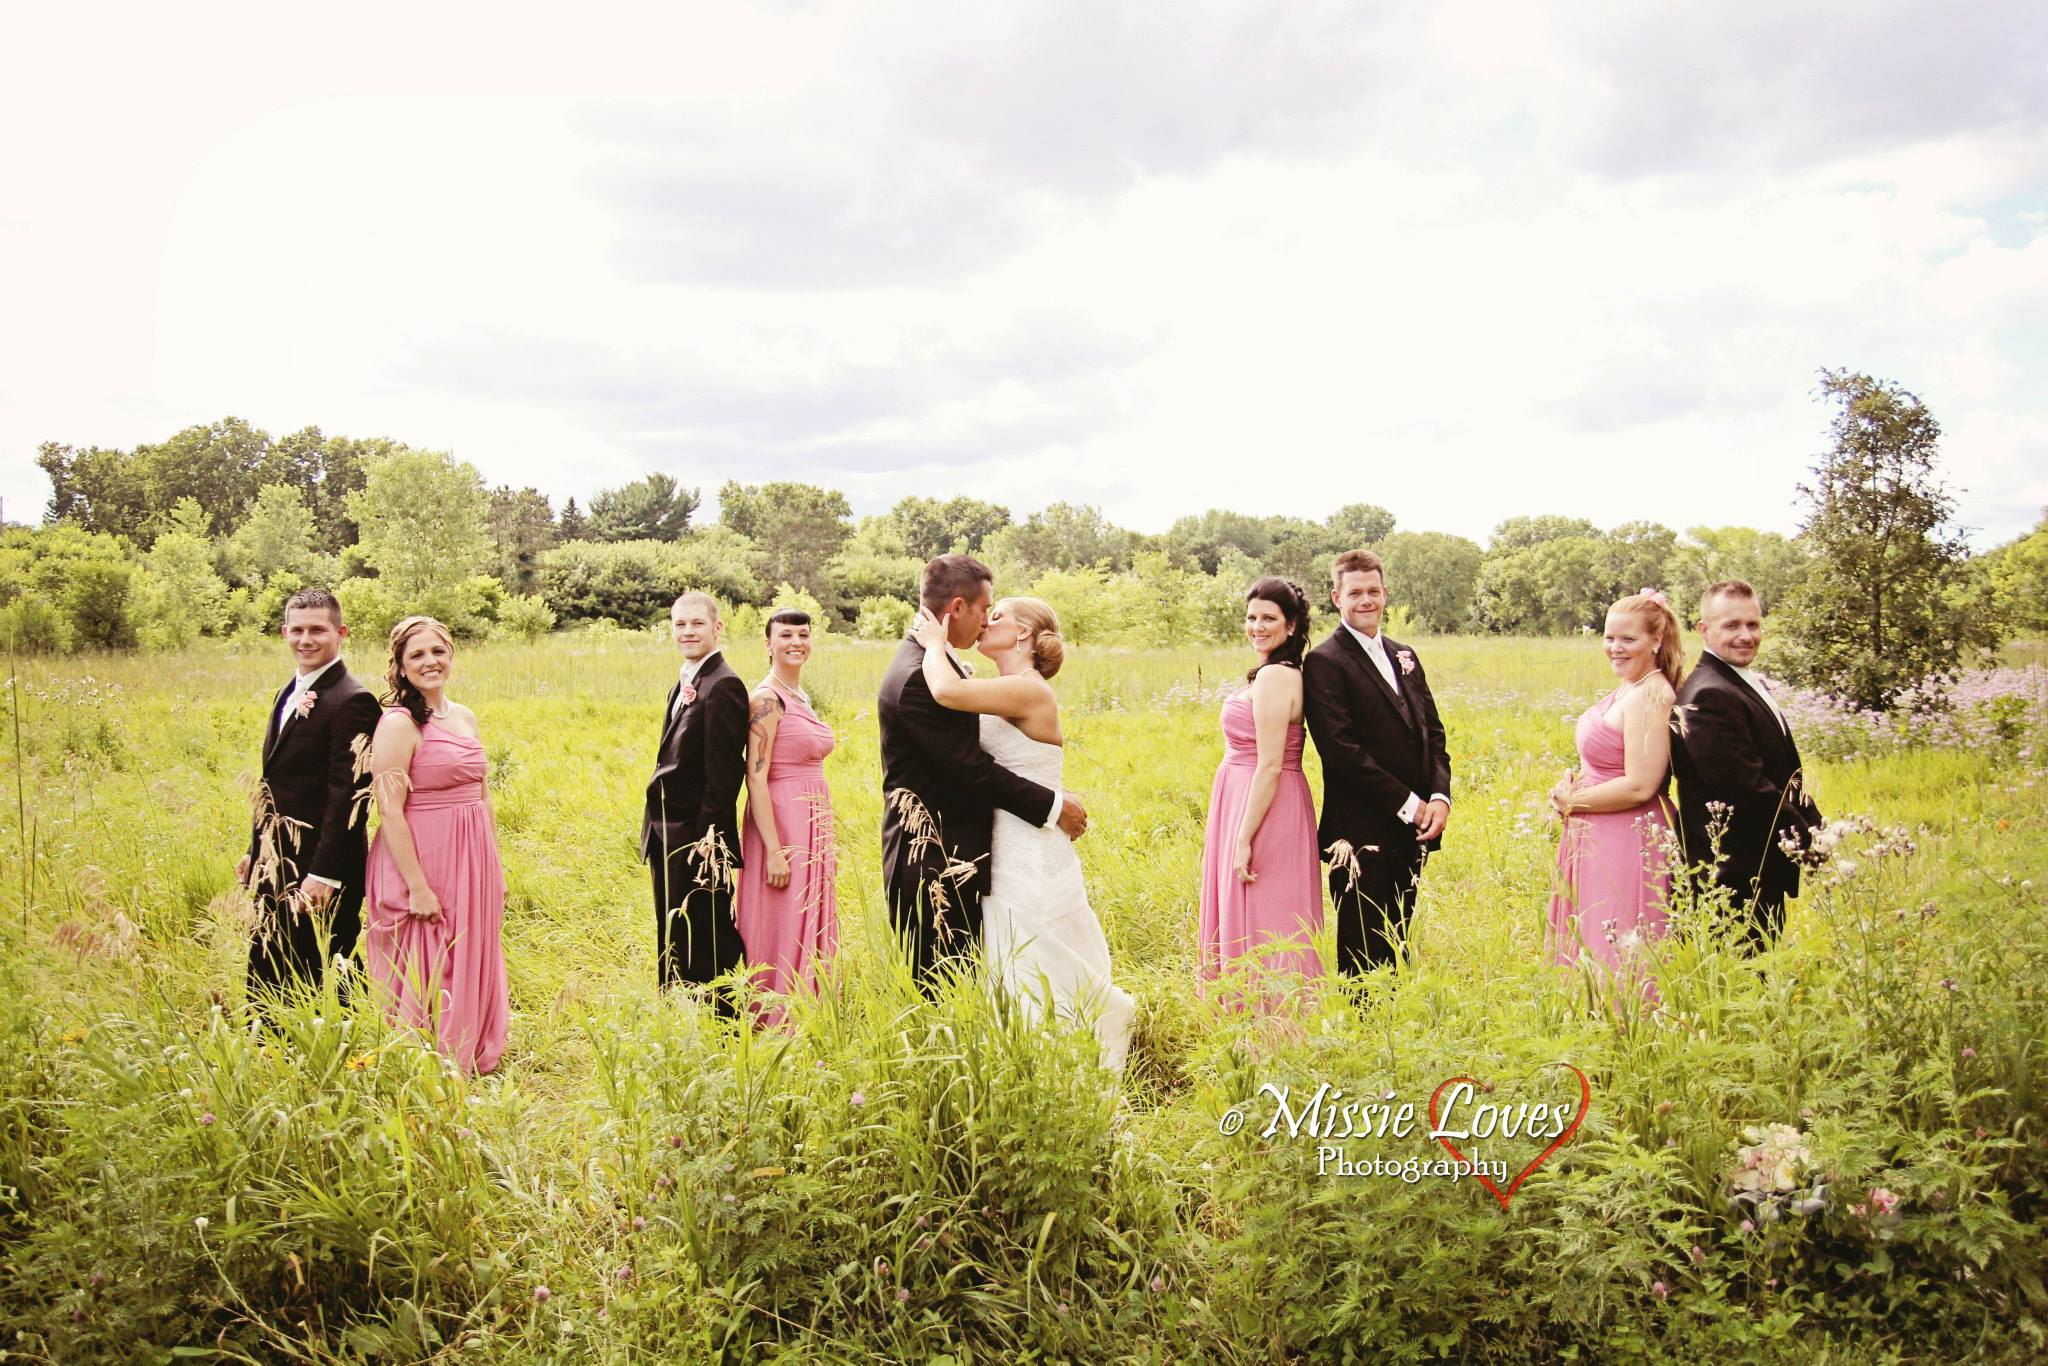 Wedding Images- Minnesota Weddin.jpg